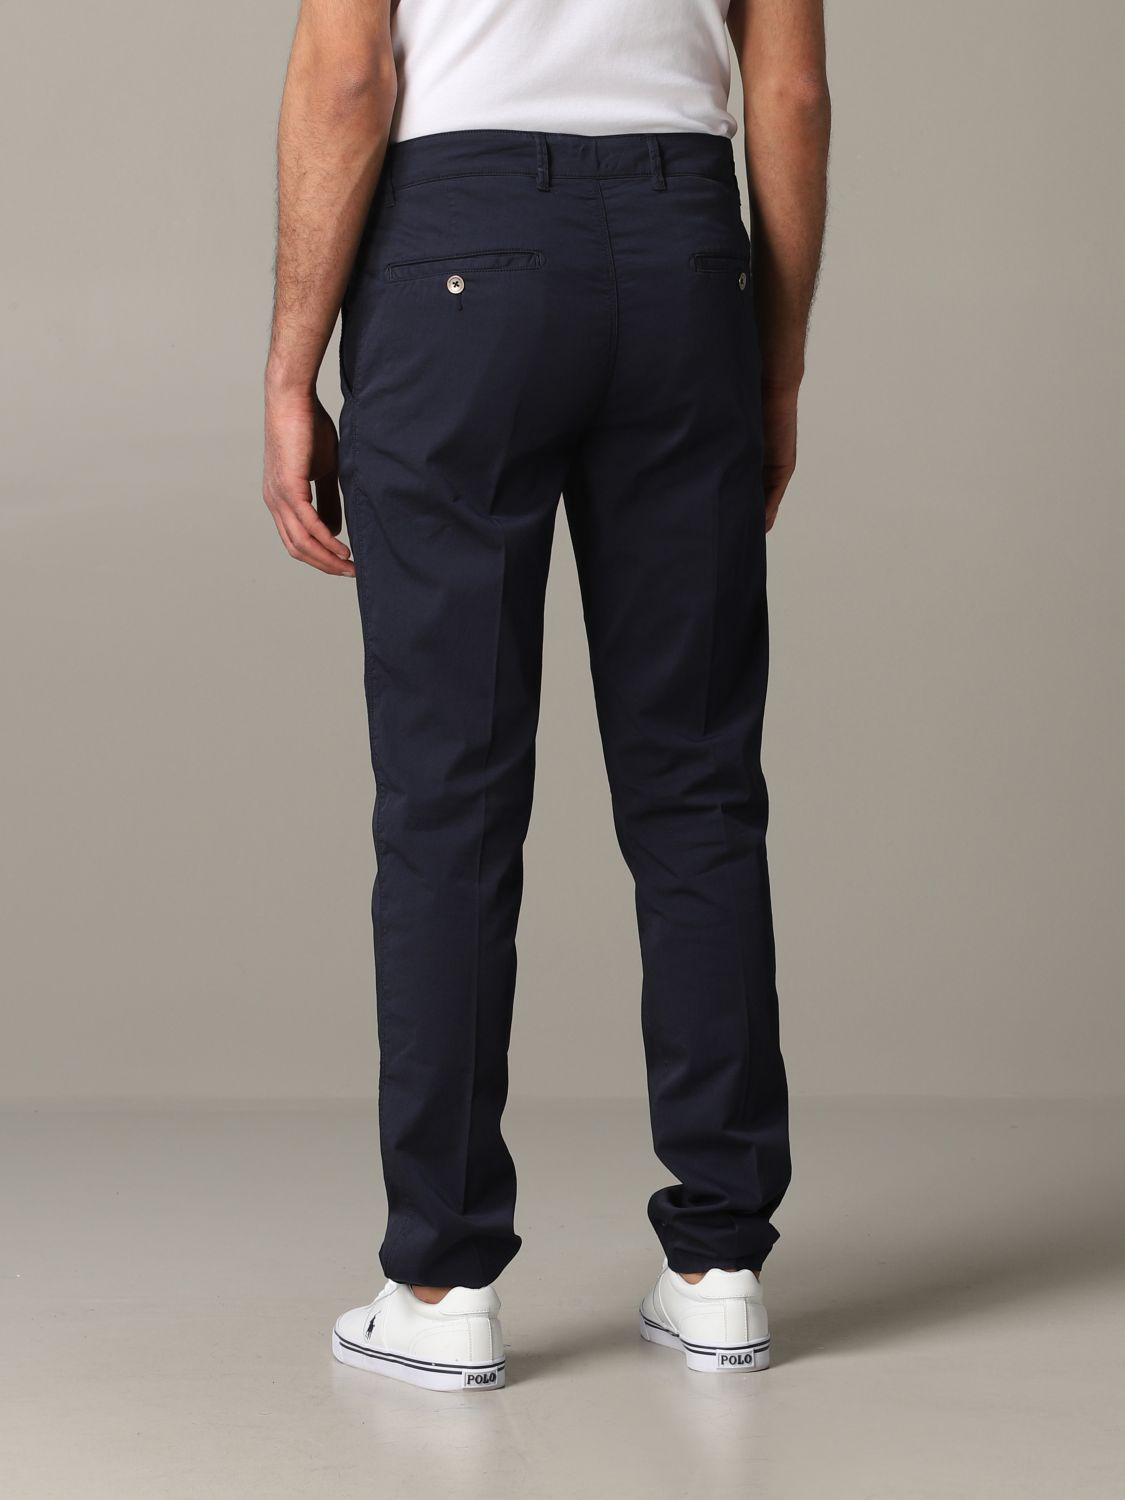 Hose Brooksfield: Hose herren Brooksfield navy 3